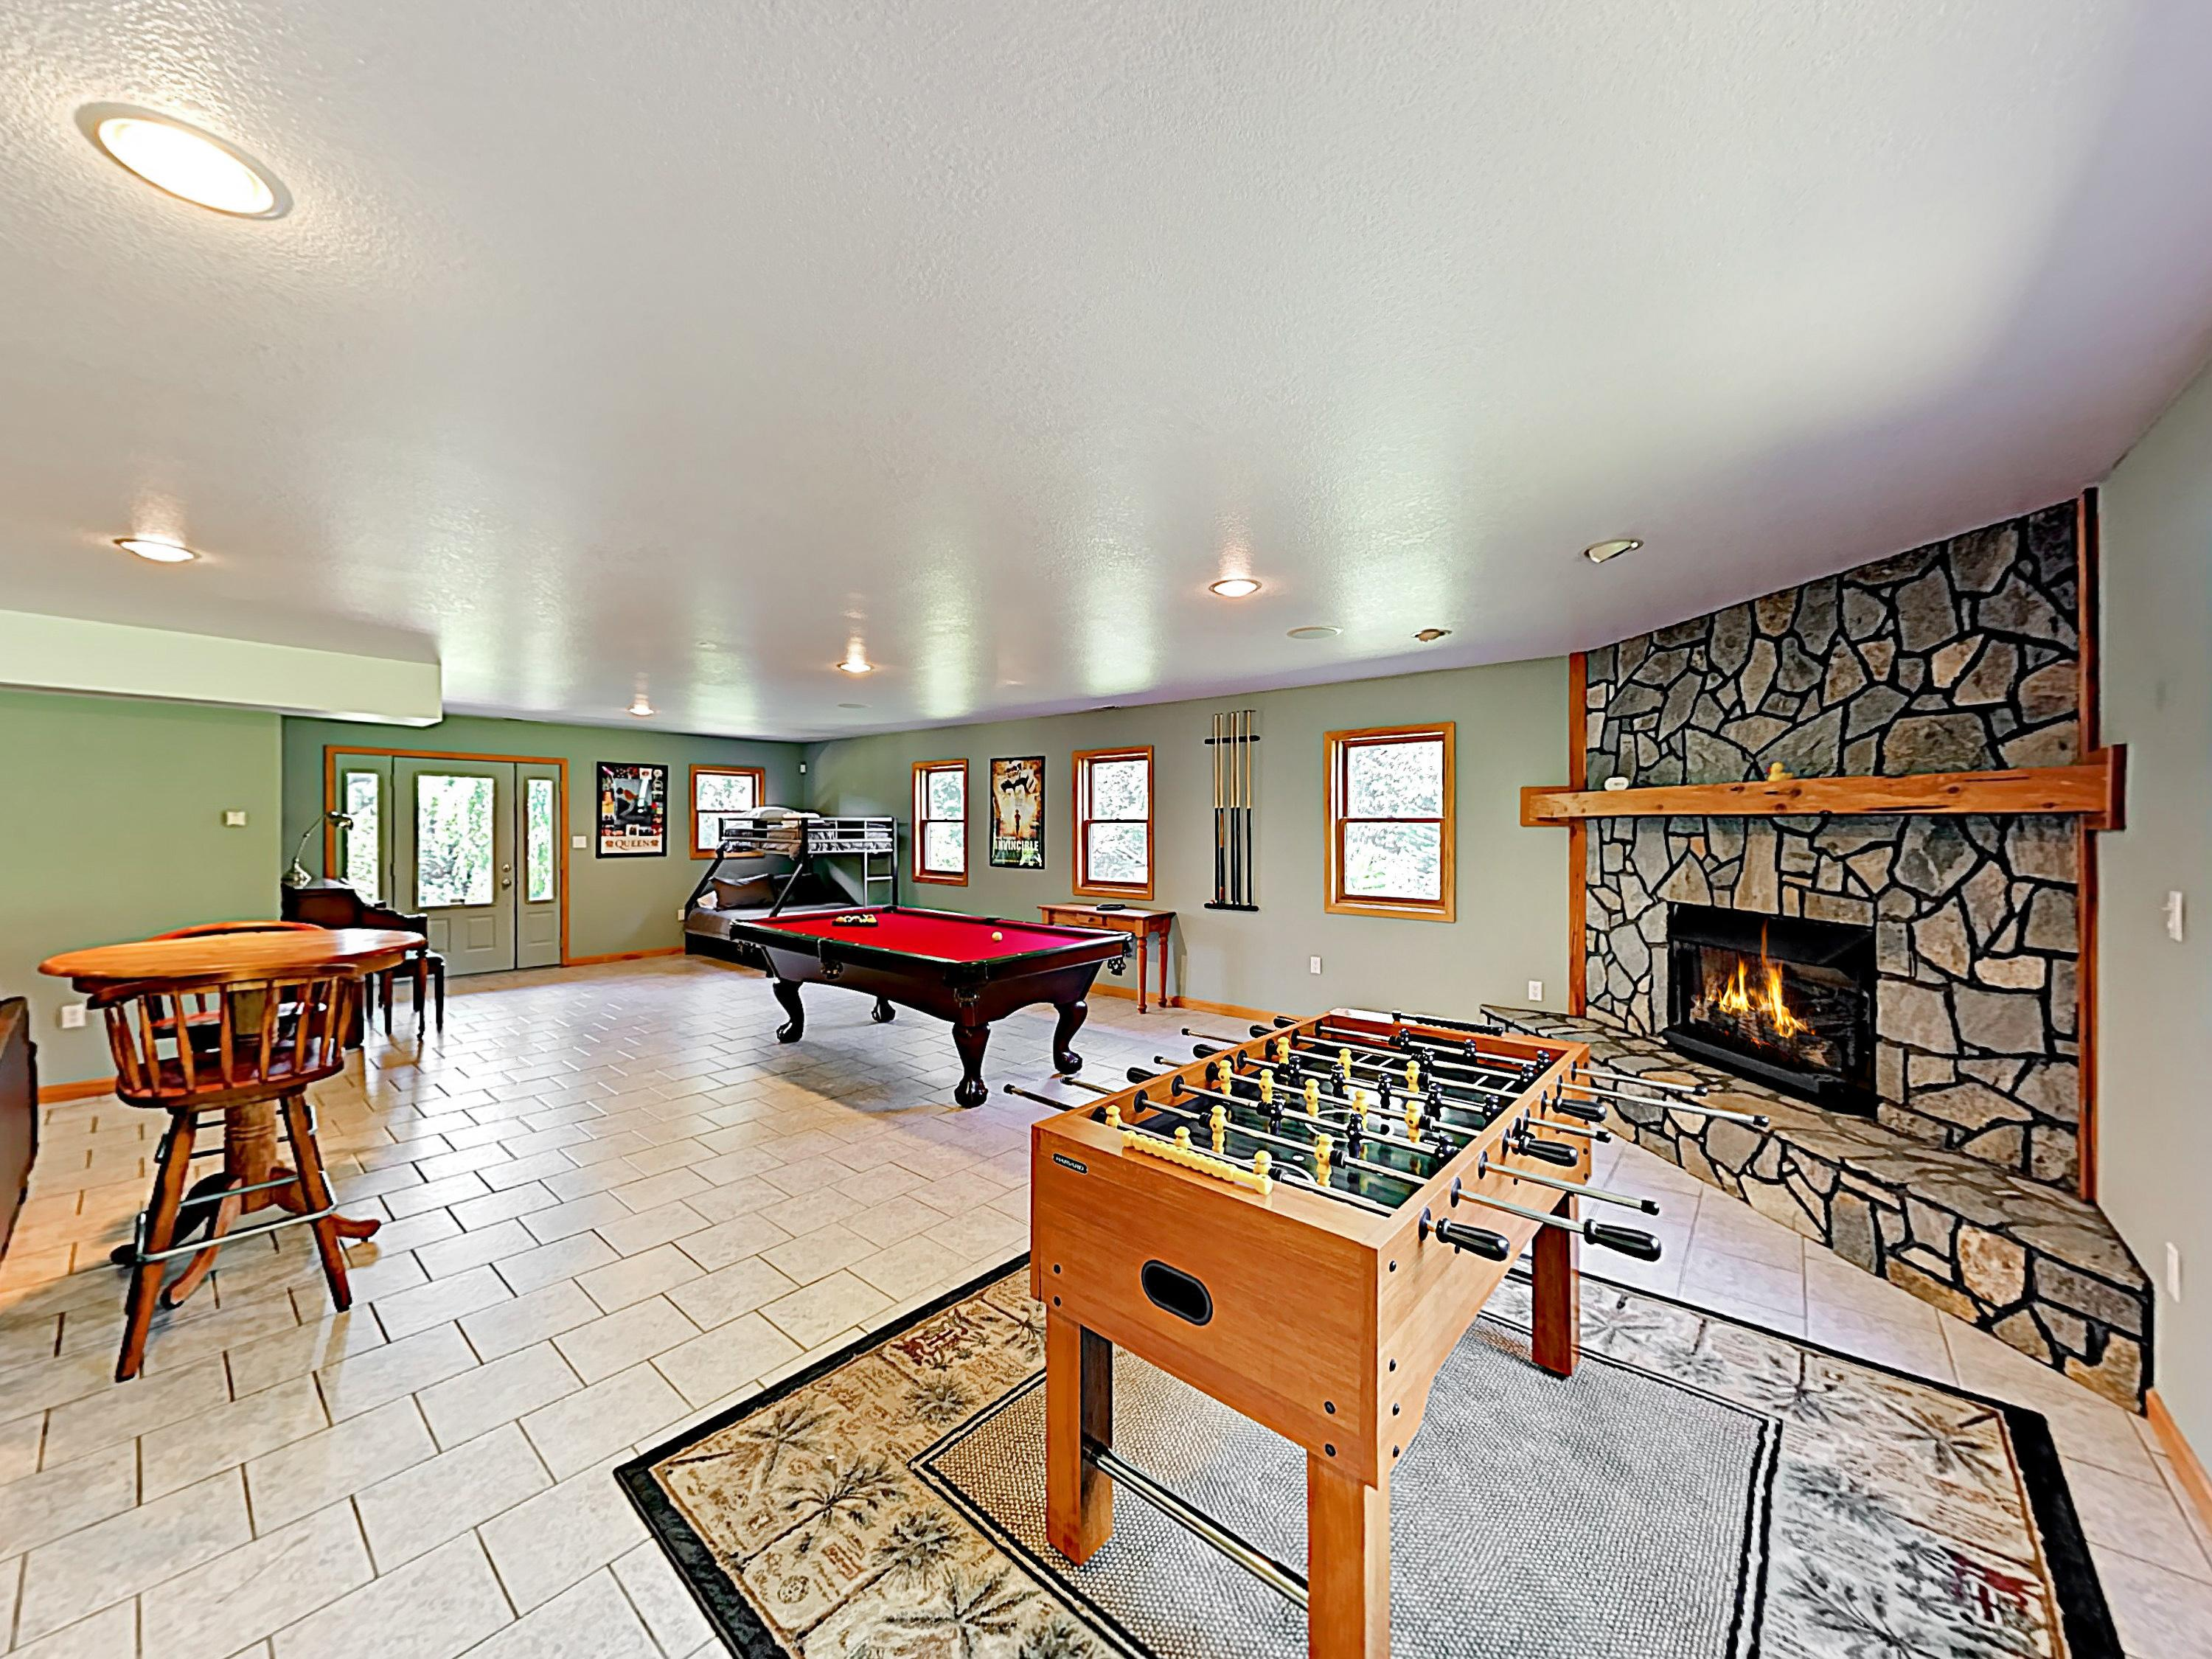 A gas fireplace adds ambience to the spacious game room, detailed with foosball, billiards, and a card table.